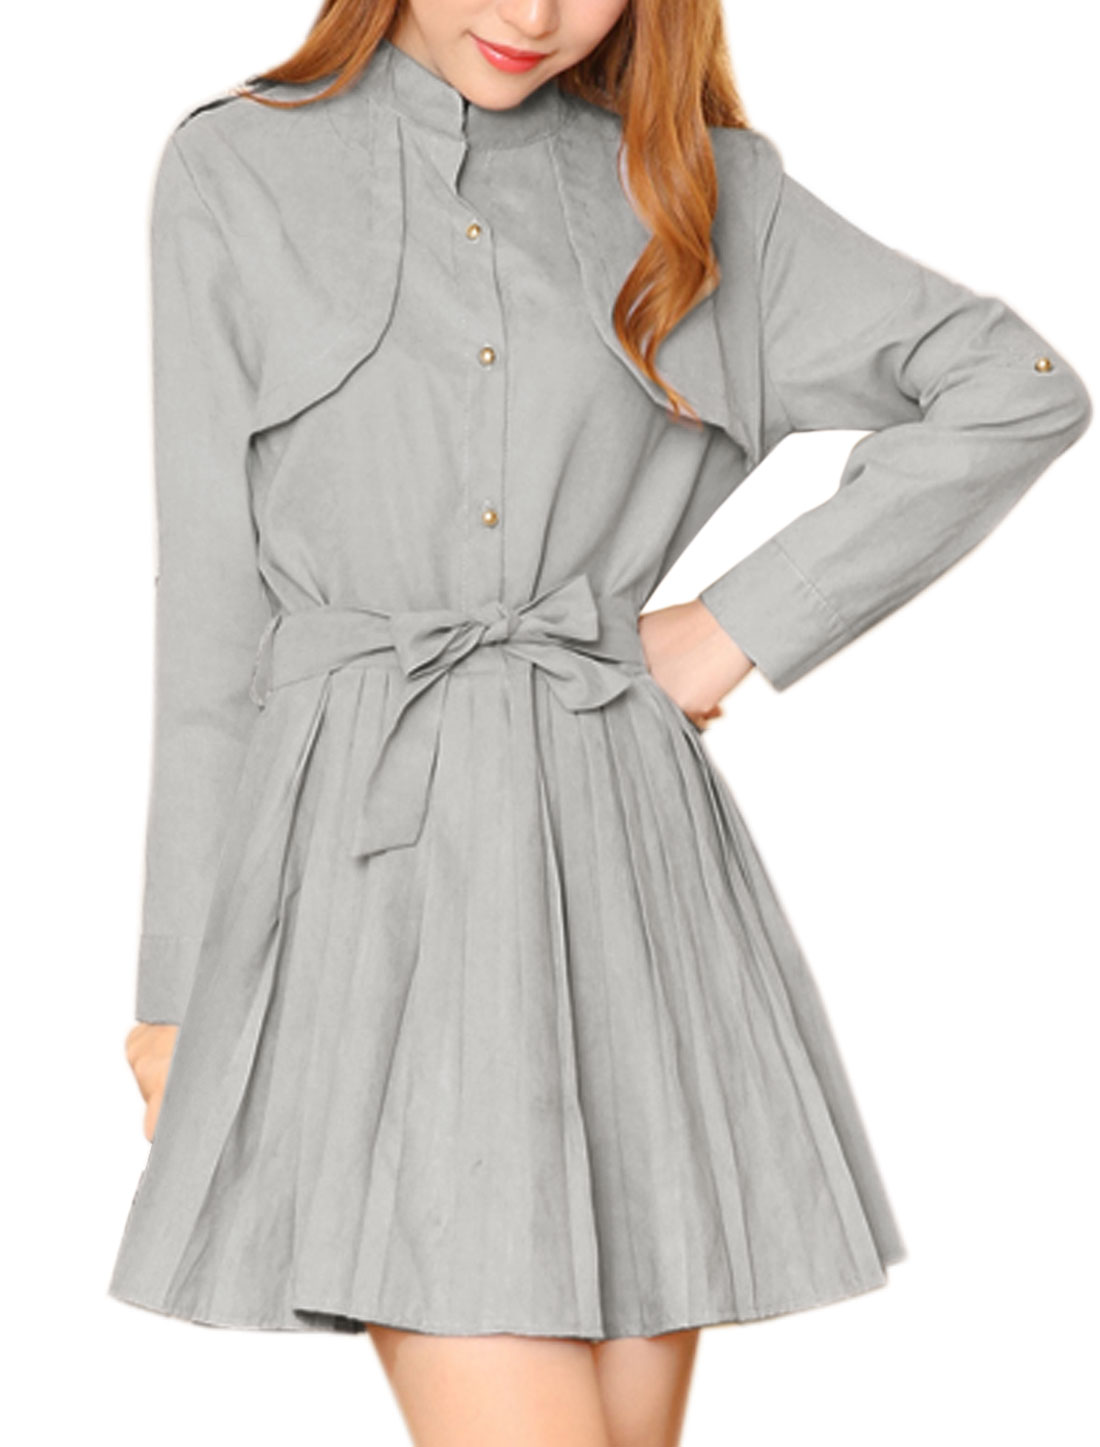 Women Rolled Up Sleeves Belted Pleated Dress Gray S